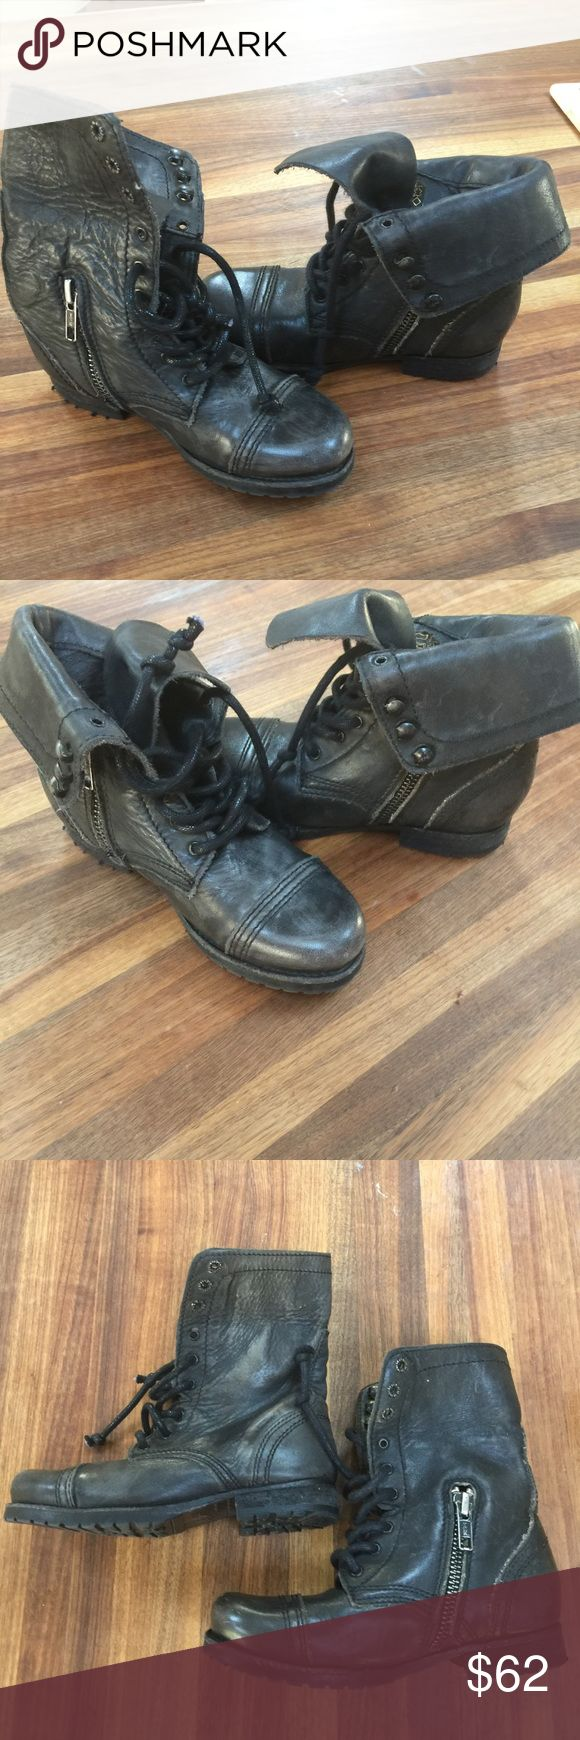 ALLSAINTS Spitalfields military boots for kids ALLSAINTS Spitafields military style black kids boots. Boy or girl. Sz UK28 US10/10.5.  Worn once. ALLSAINTS Shoes Boots